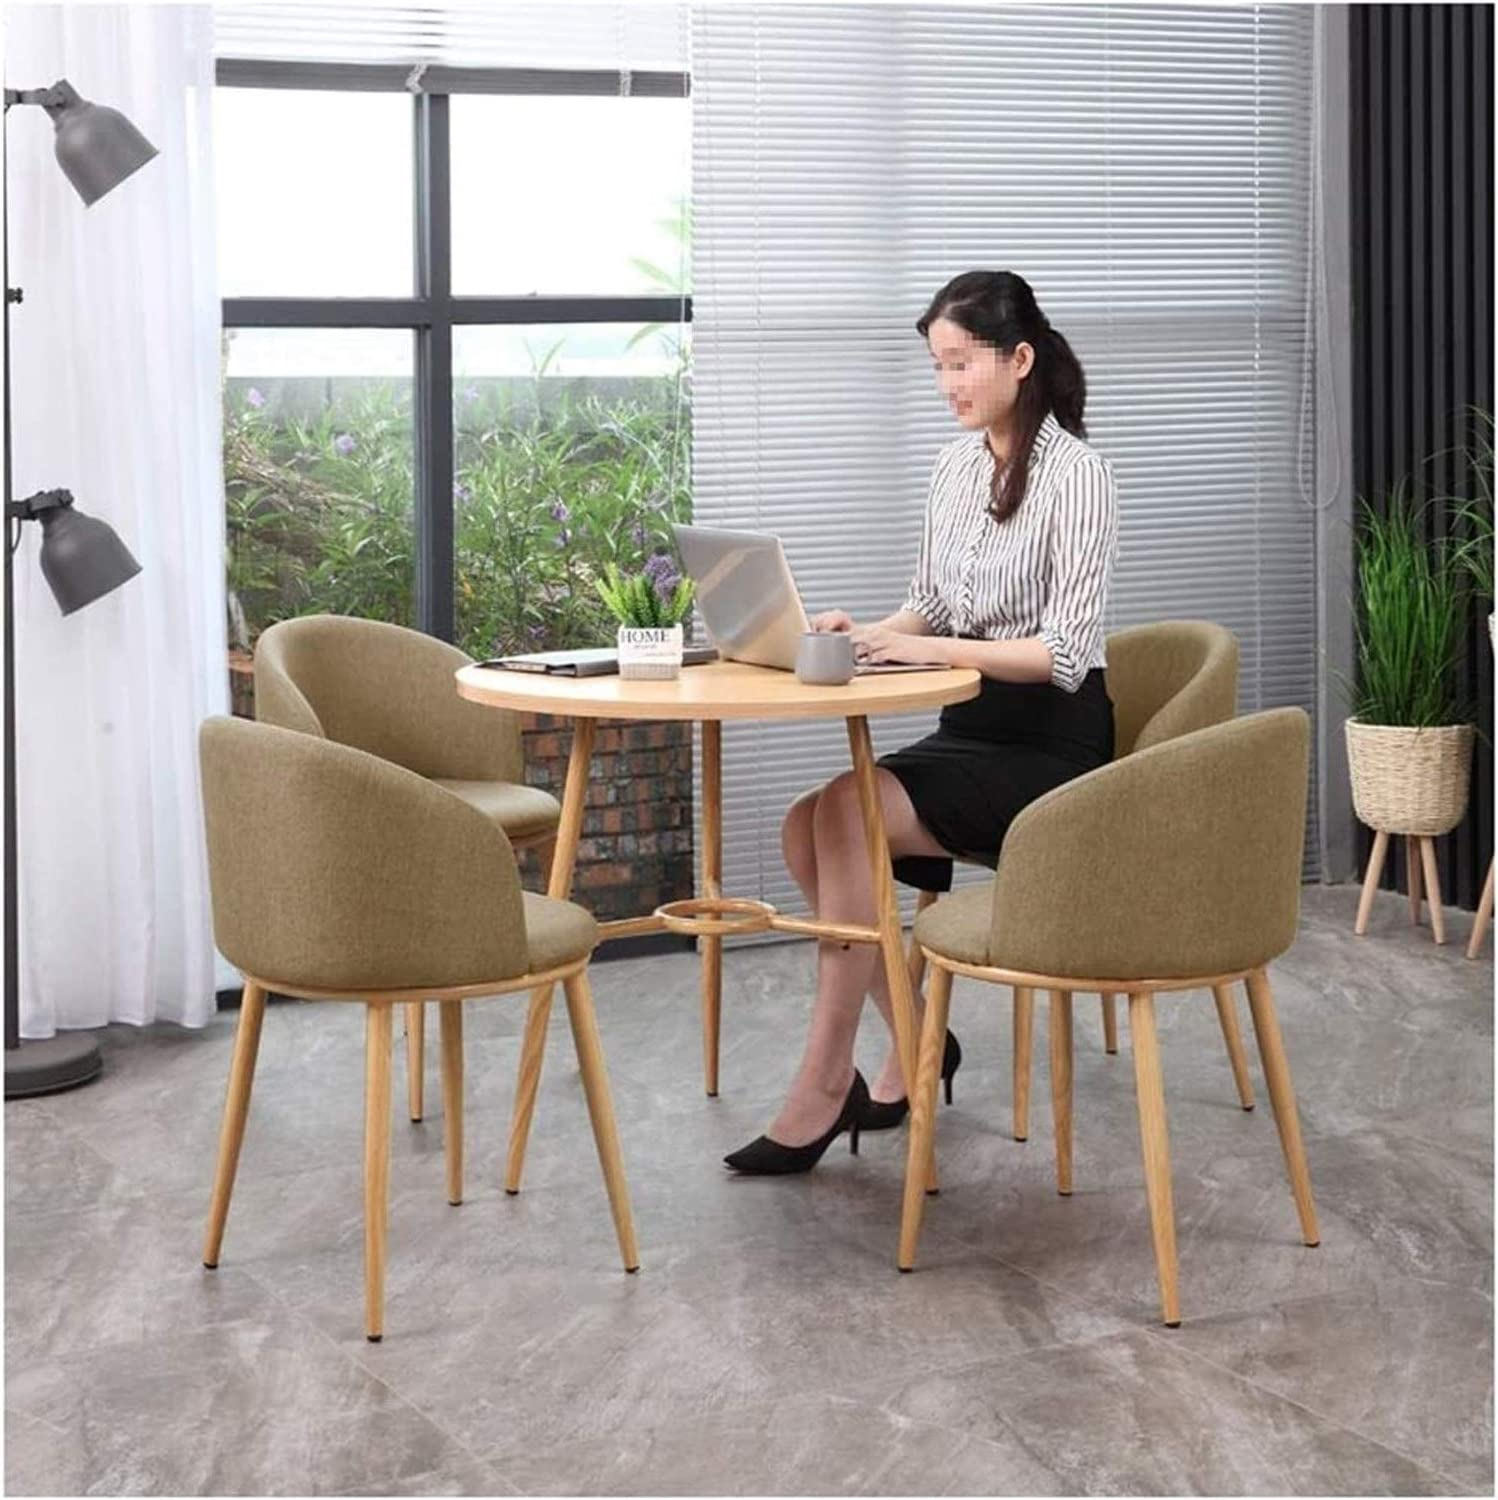 Ranking integrated 1st place Round Dining Table and Chair Sale price of 5 Set